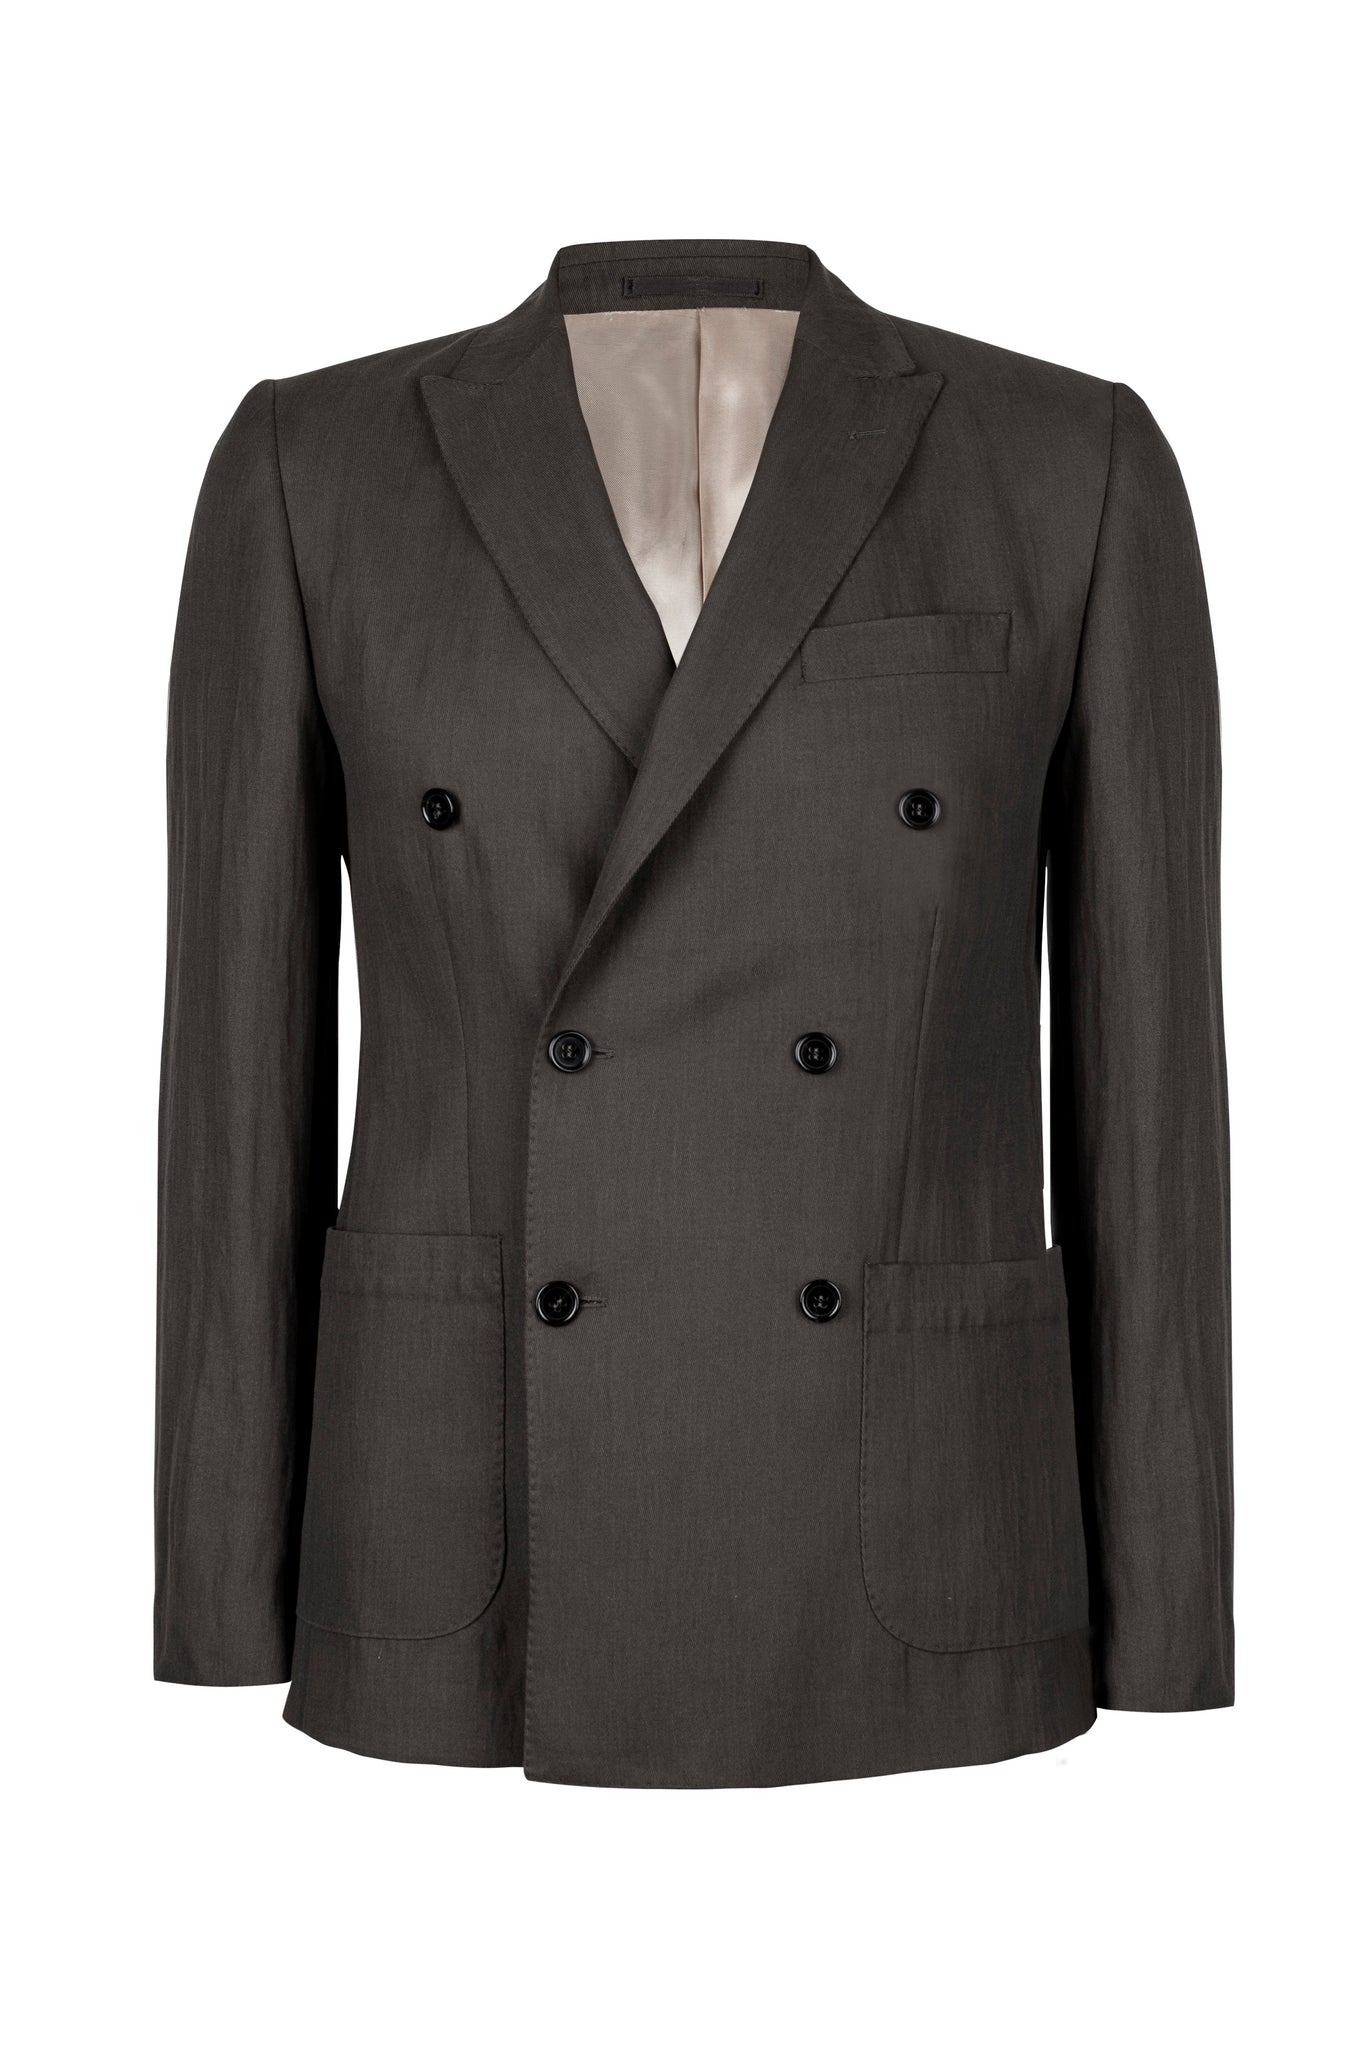 "BLAZER ""MUNICH"" 